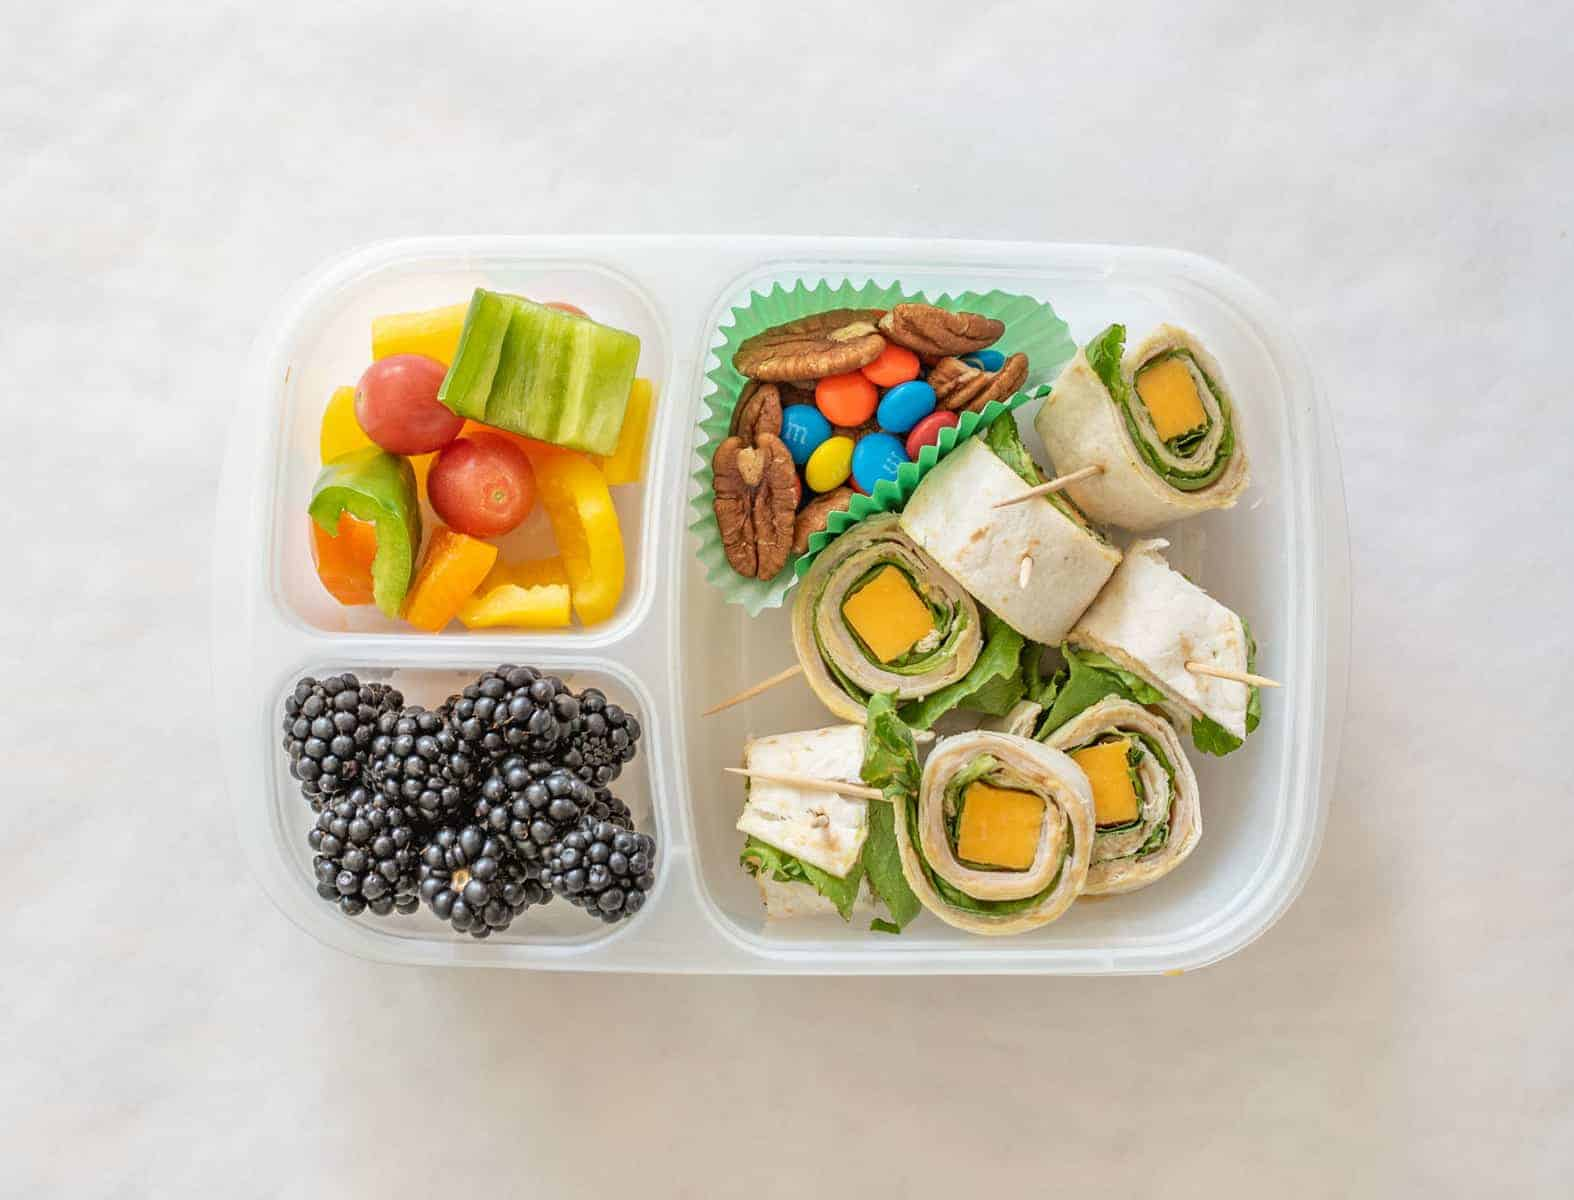 Quick and easy school and adult lunch box ideas made with Sabra Hummus, fruit, vegetables, and more.